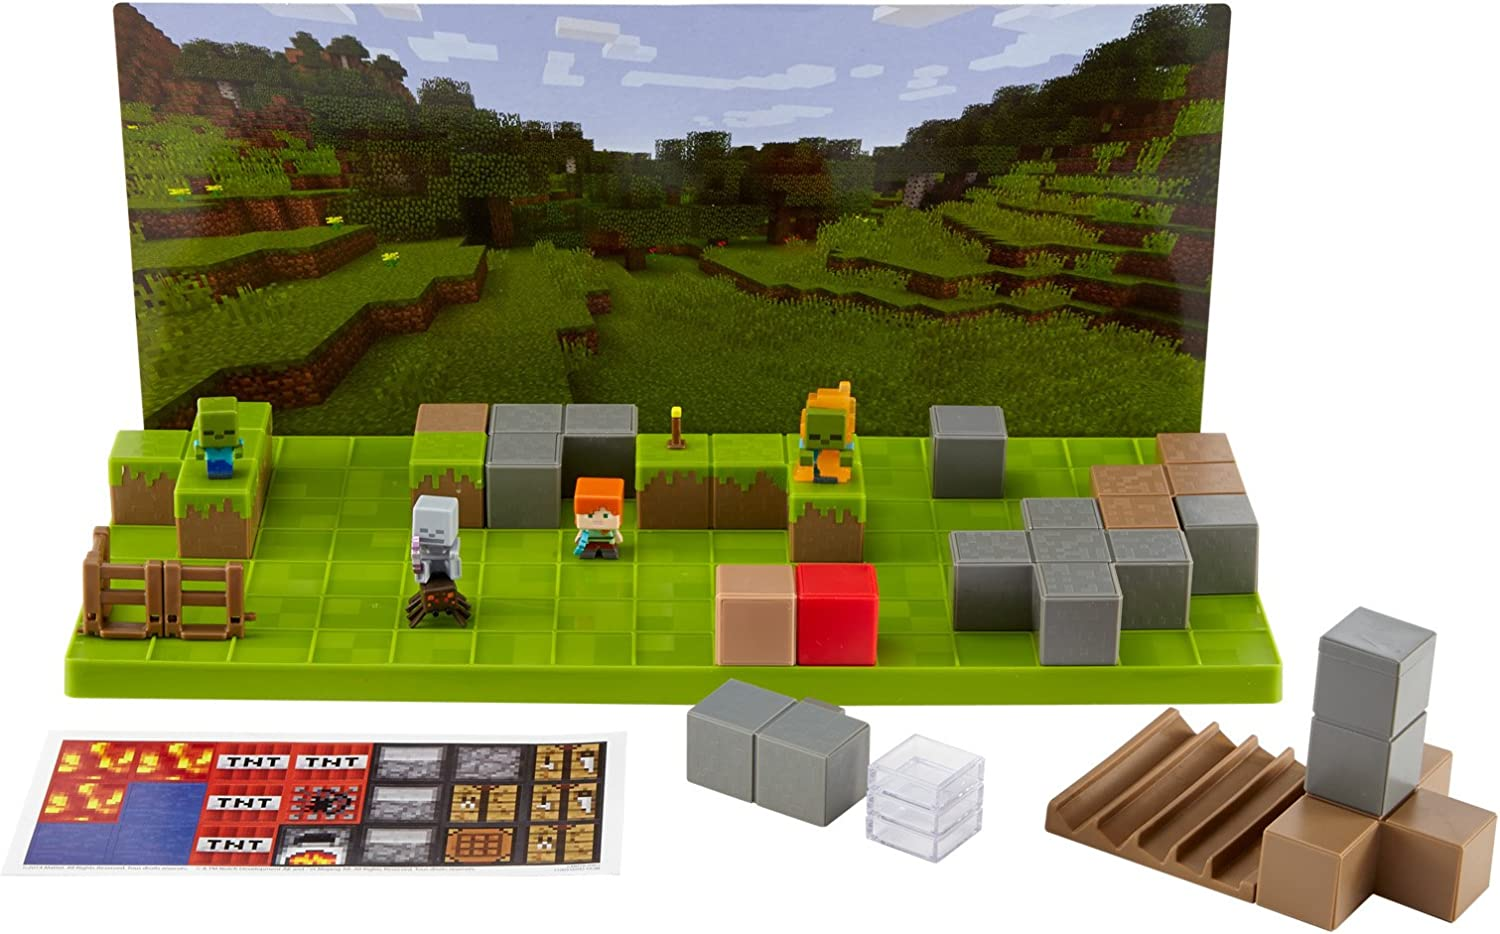 Top 15 Best Minecraft Toys (2020 Reviews & Buying Guide) 1